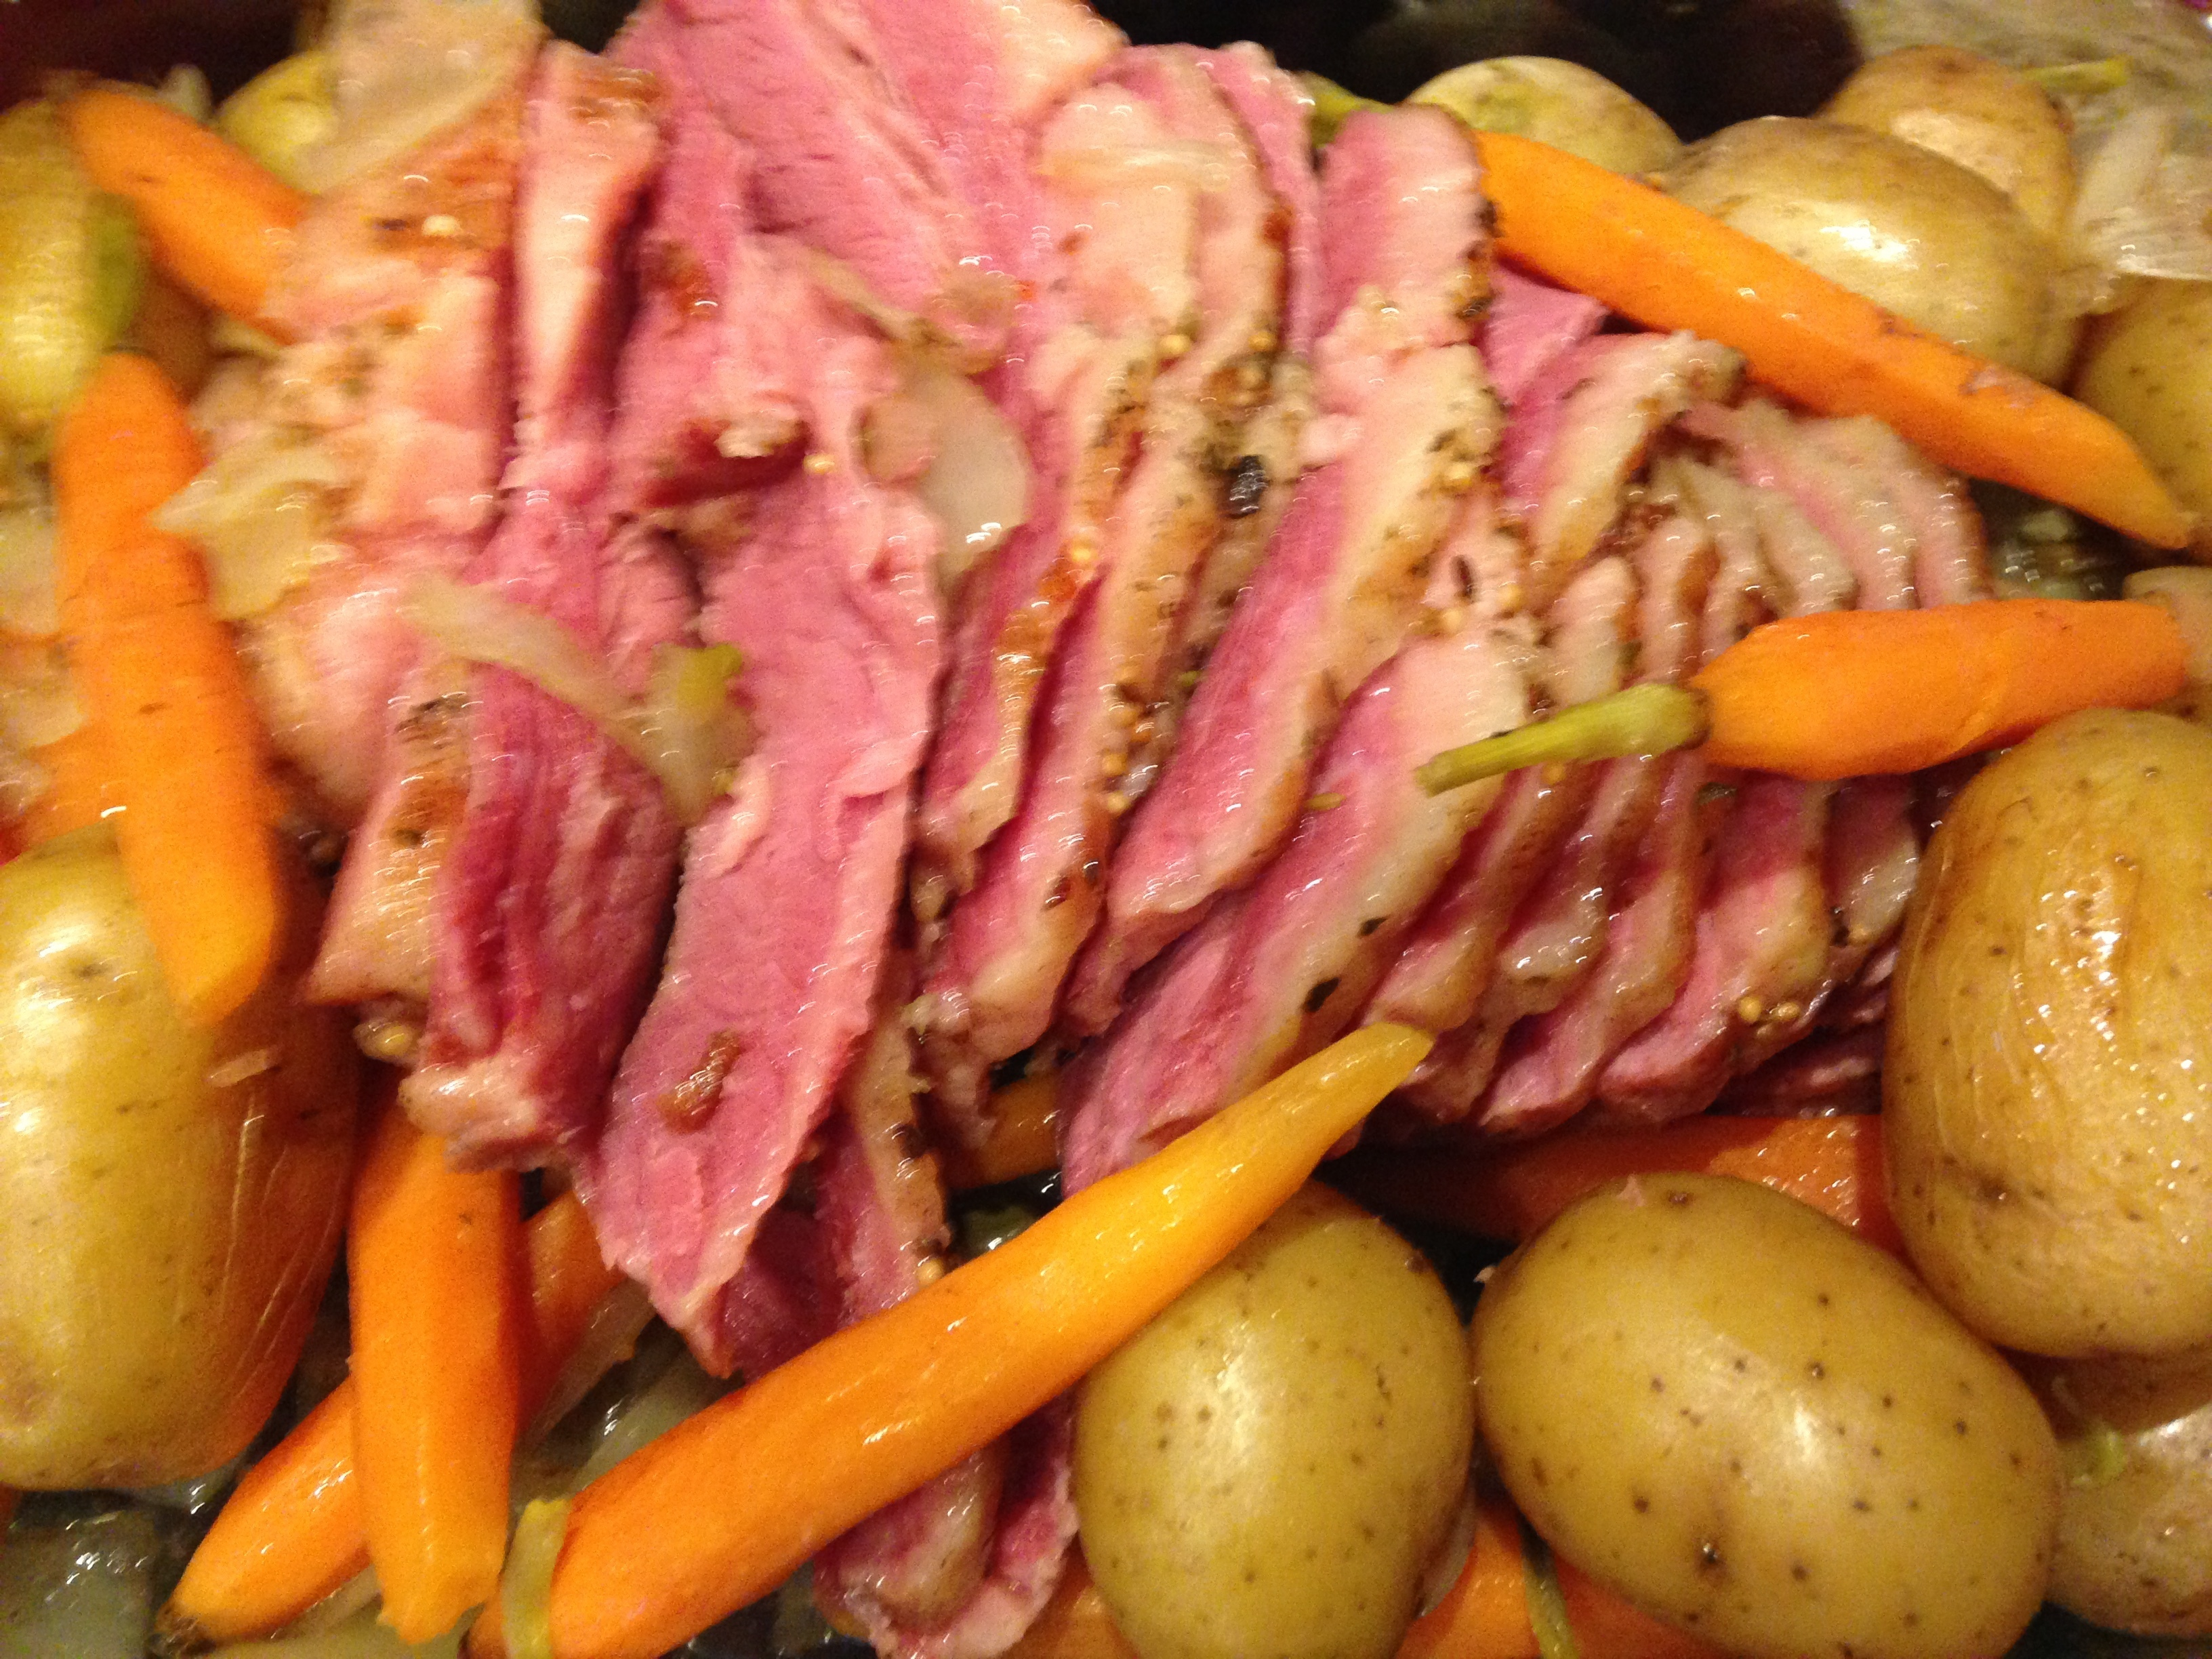 A Taste of St. Paddy's Day…Corned Beef, Potatoes, Carrots, and Roasted Cabbage on the side!